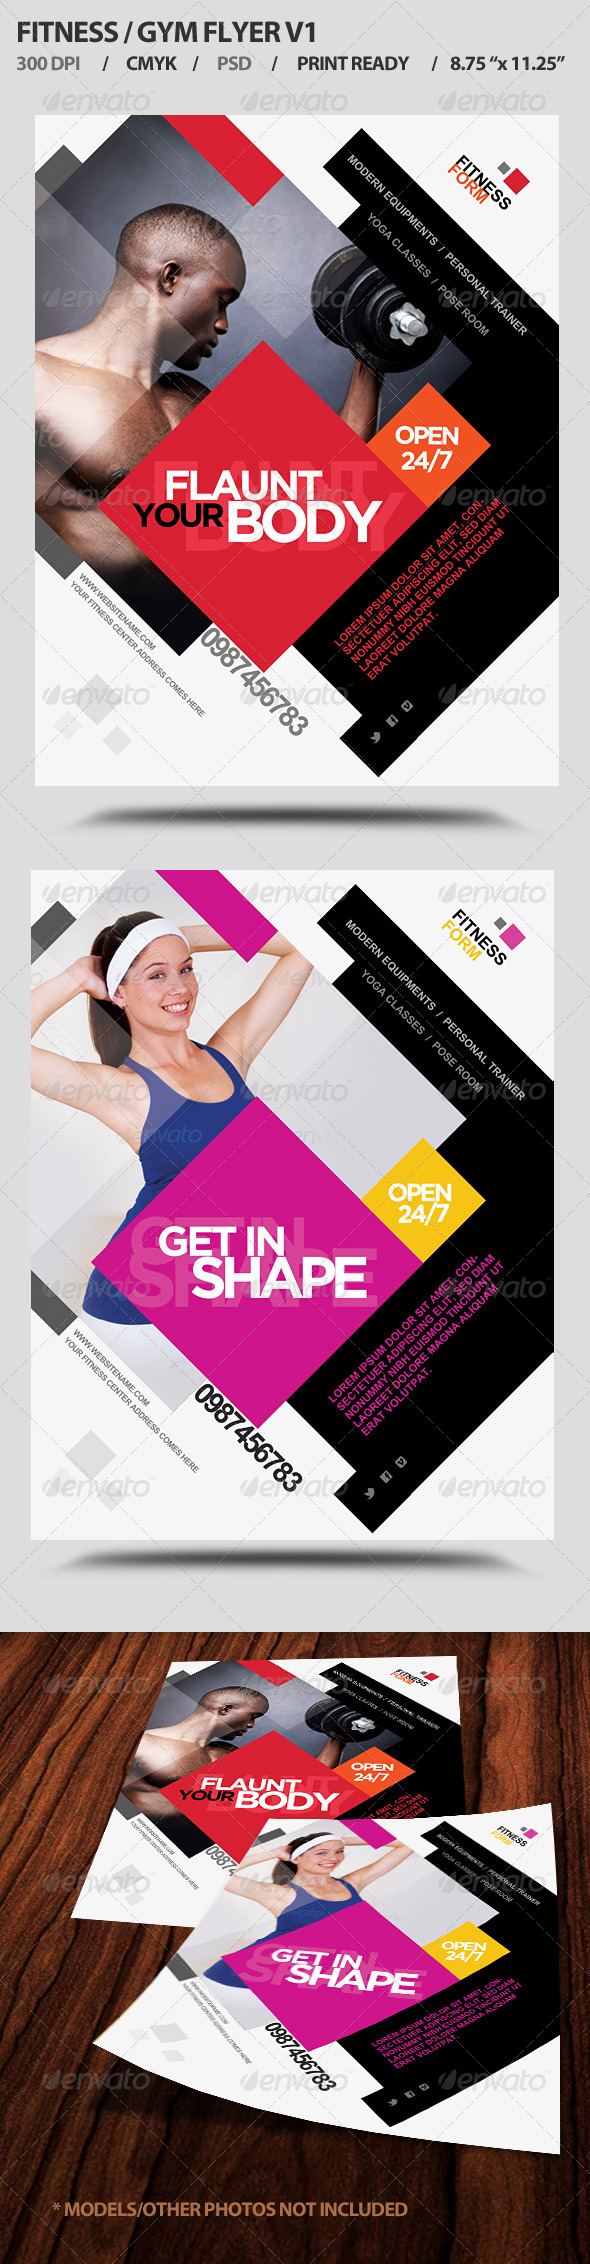 GraphicRiver Fitness Gym Business Promotion Flyer V1 4524141